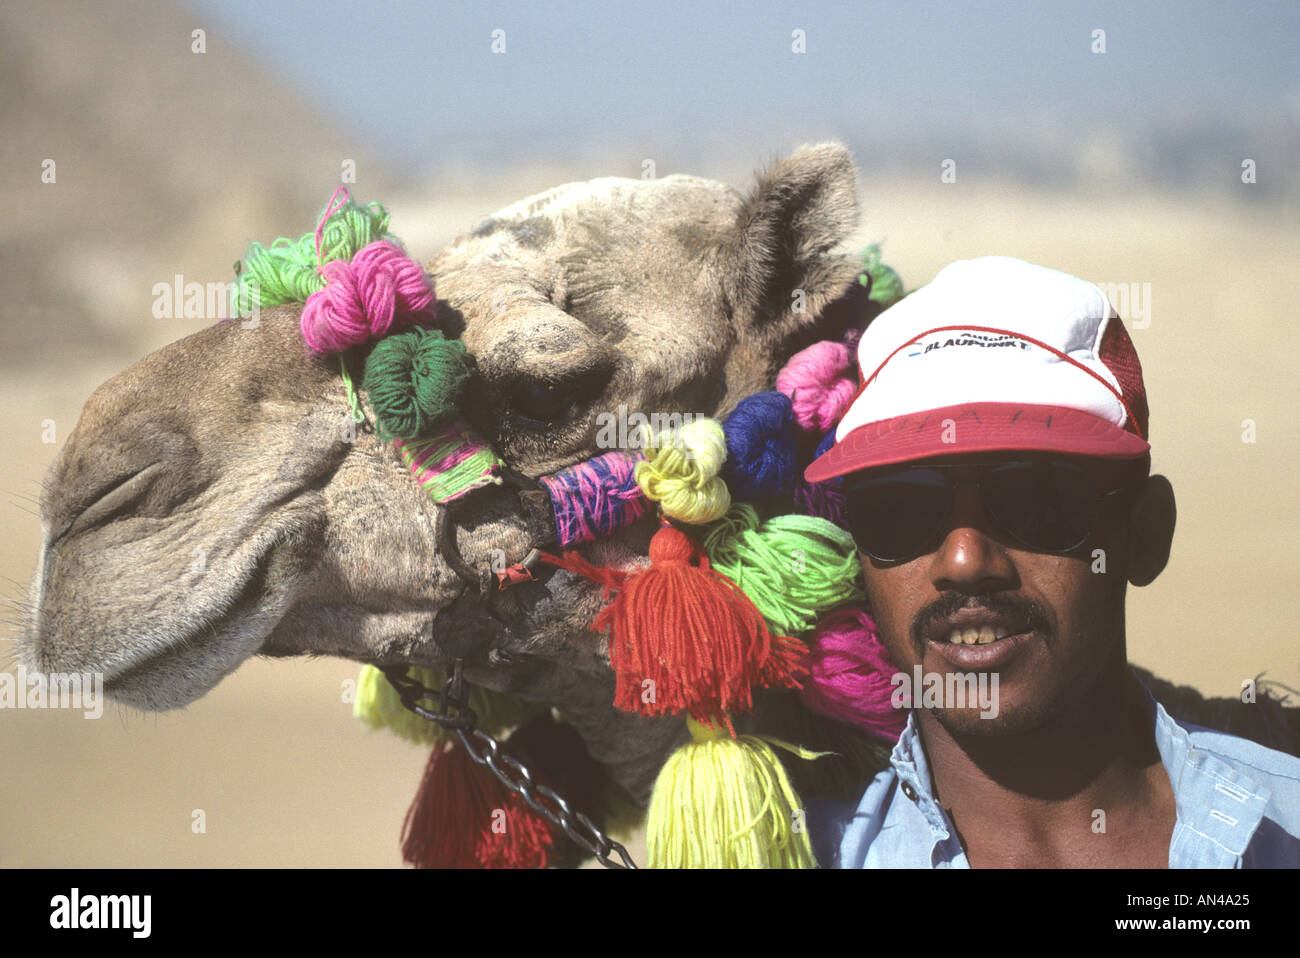 Abp597 camel owner pyramids giza egypt stock photos & camel owner